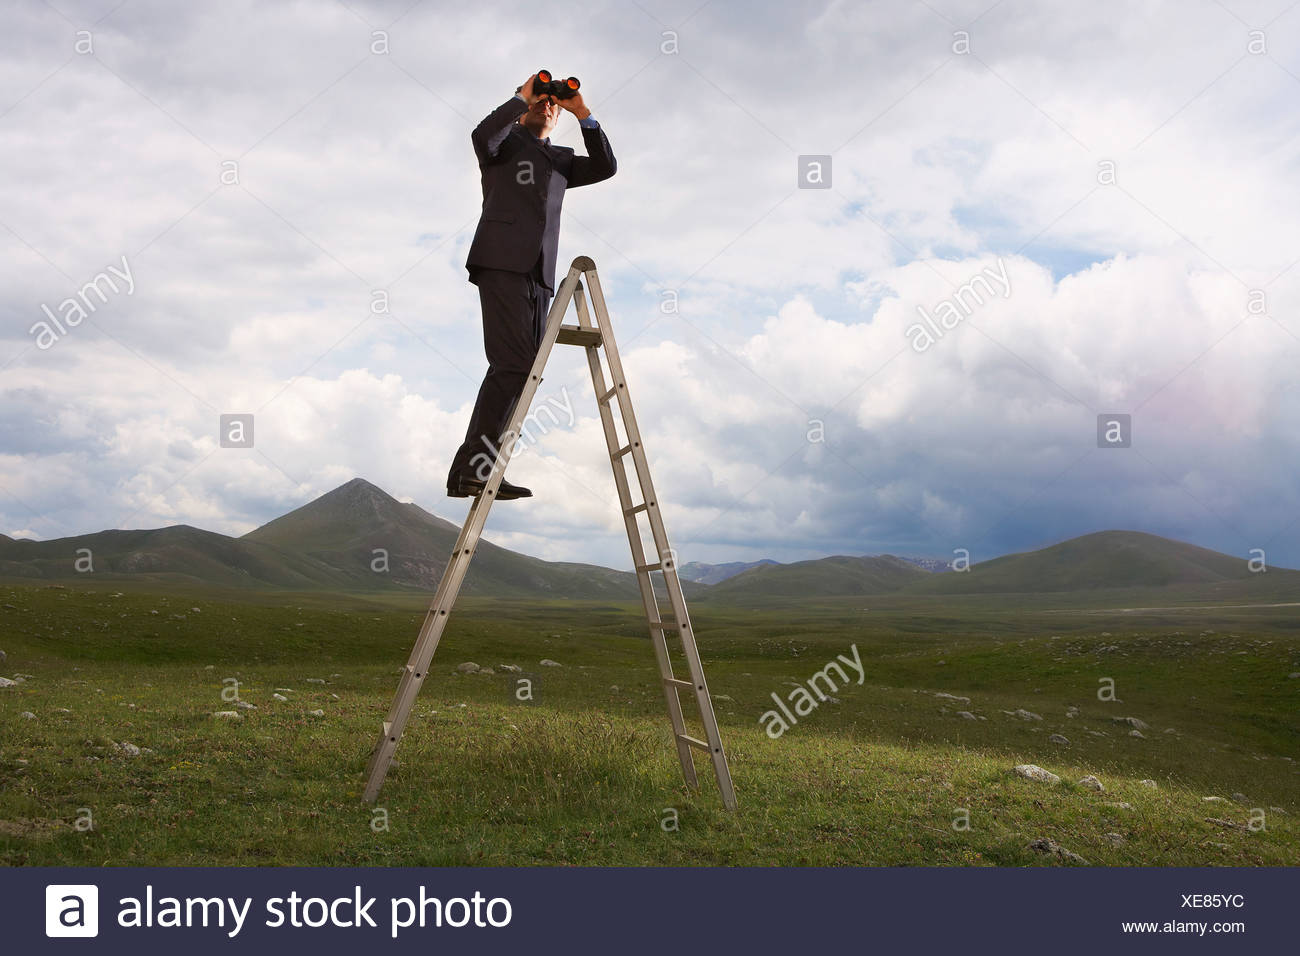 Businessman in mountain field on ladder Looking Through Binoculars, low angle view - Stock Image